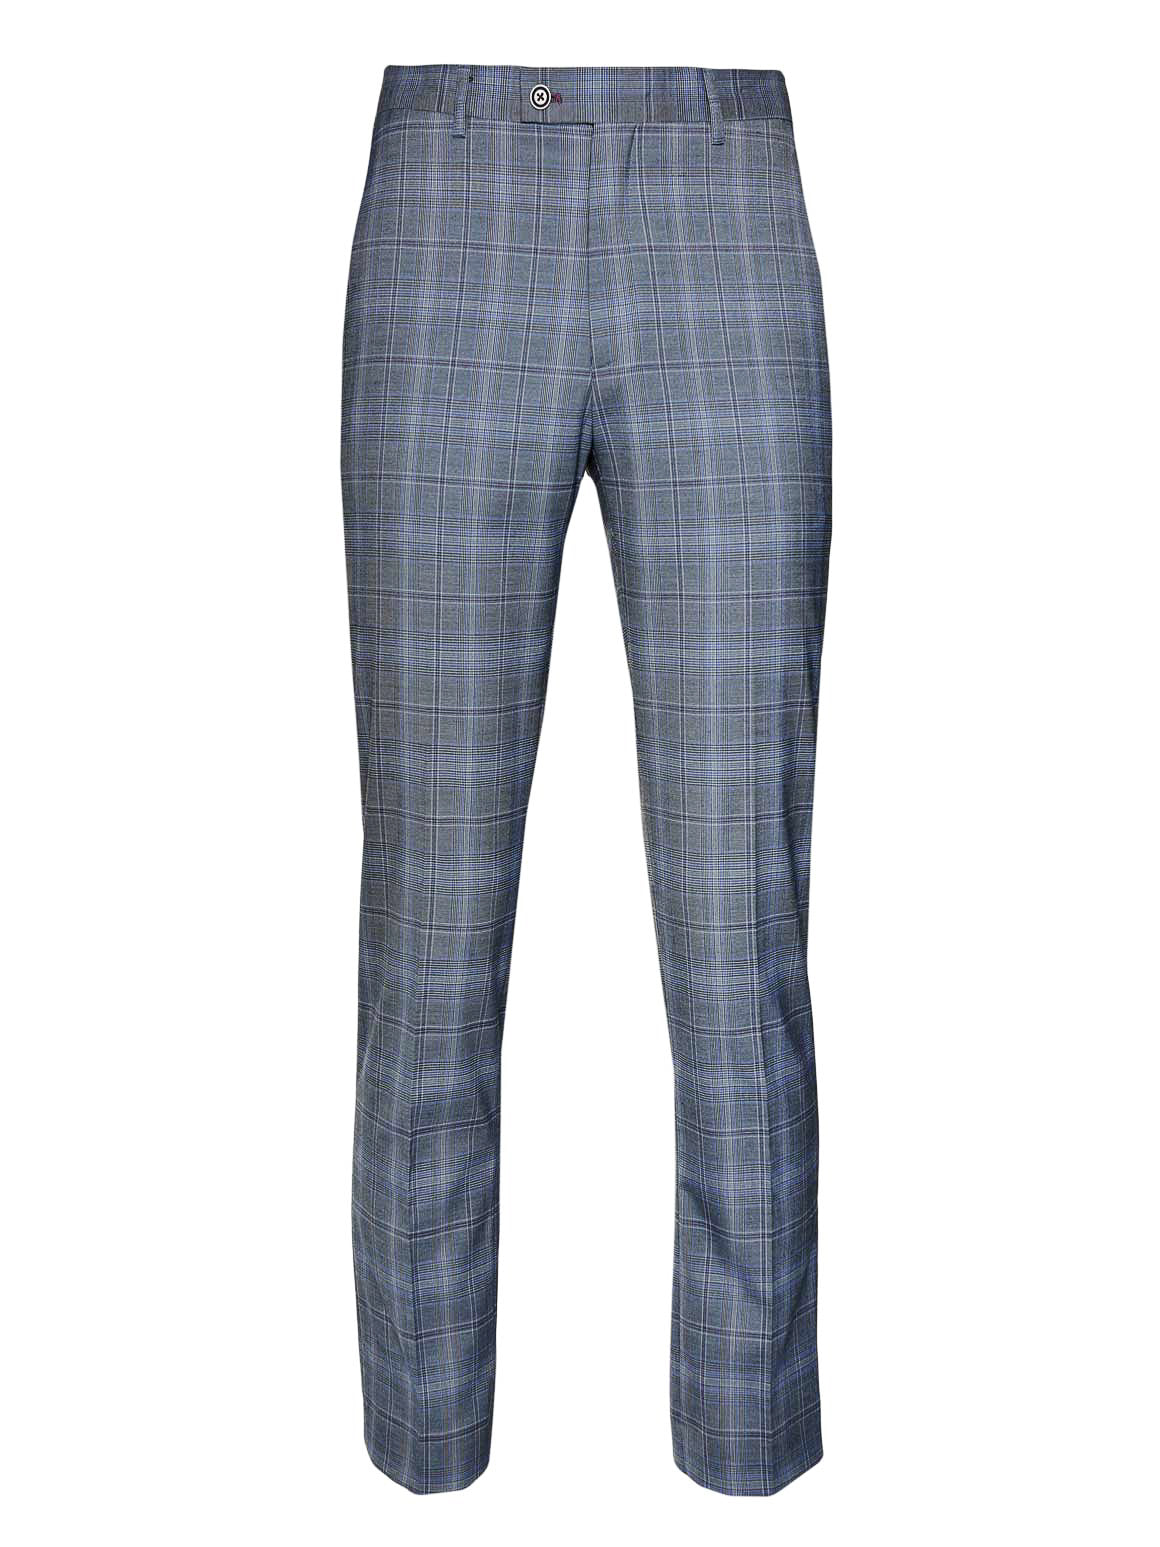 Downing Pants - Slim - Periwinkle & Purple Plaid